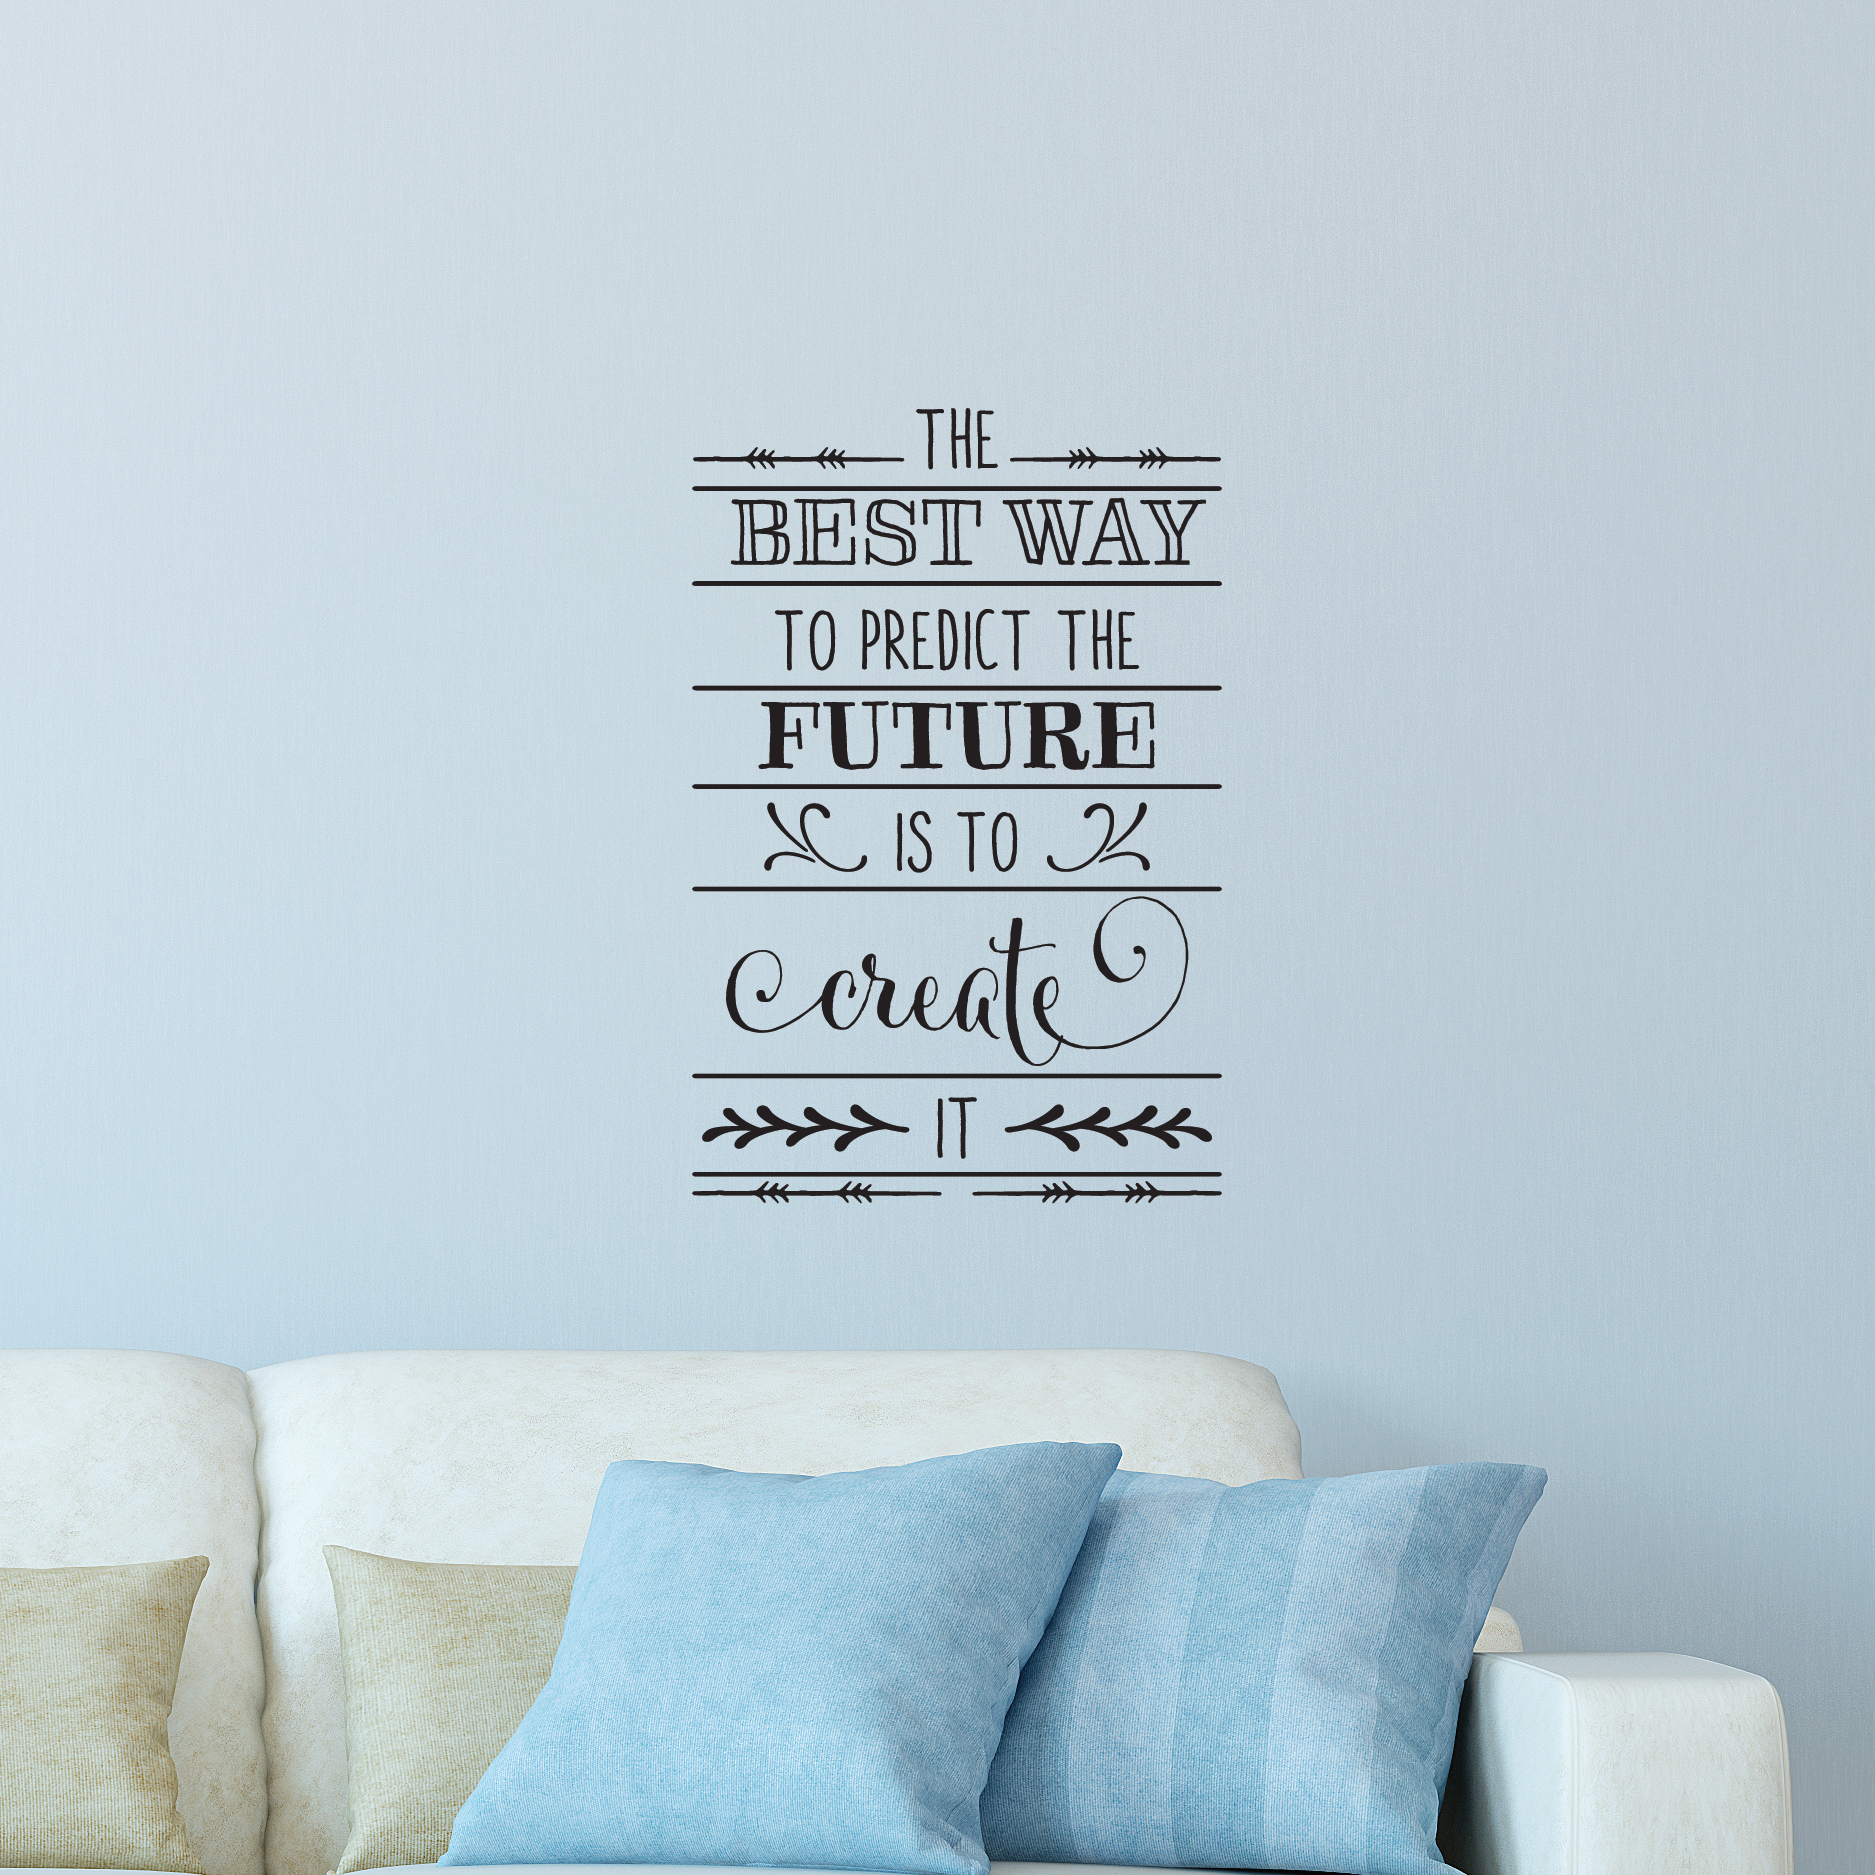 Create the future wall quotes decal wallquotes the best way to predict the future is to create it amipublicfo Gallery